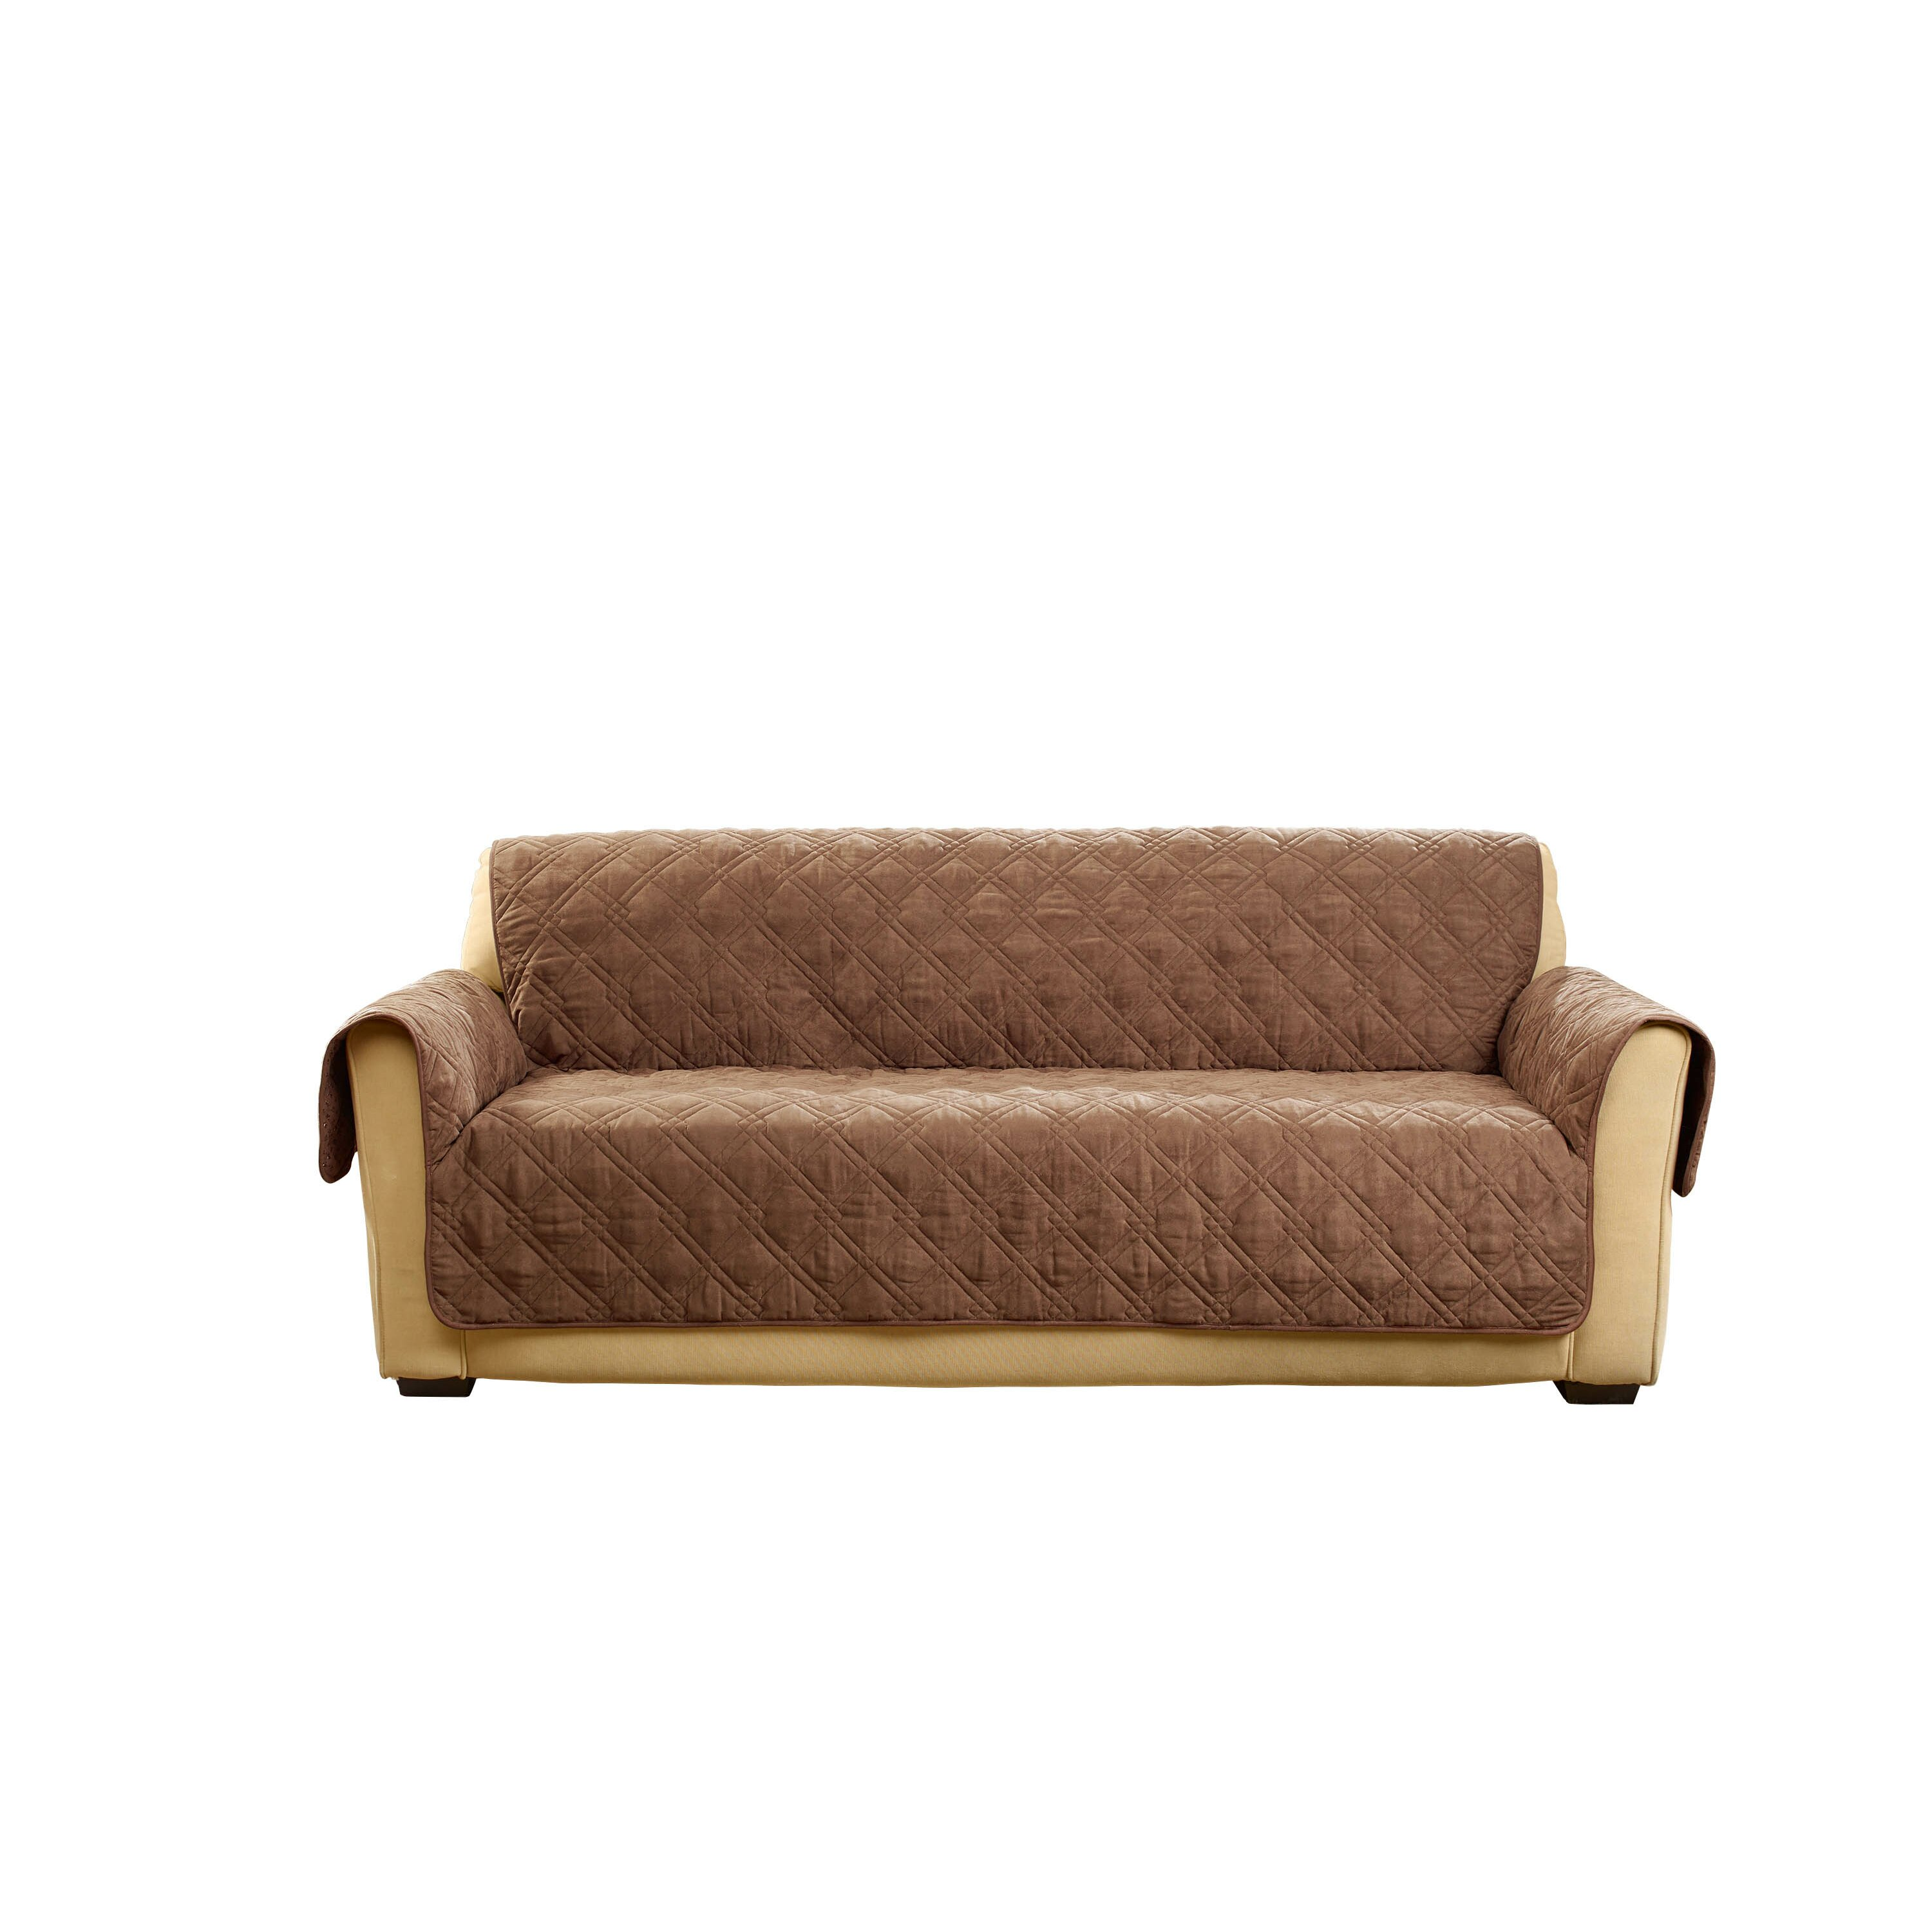 Sure Fit Deluxe Sofa Slipcover Reviews